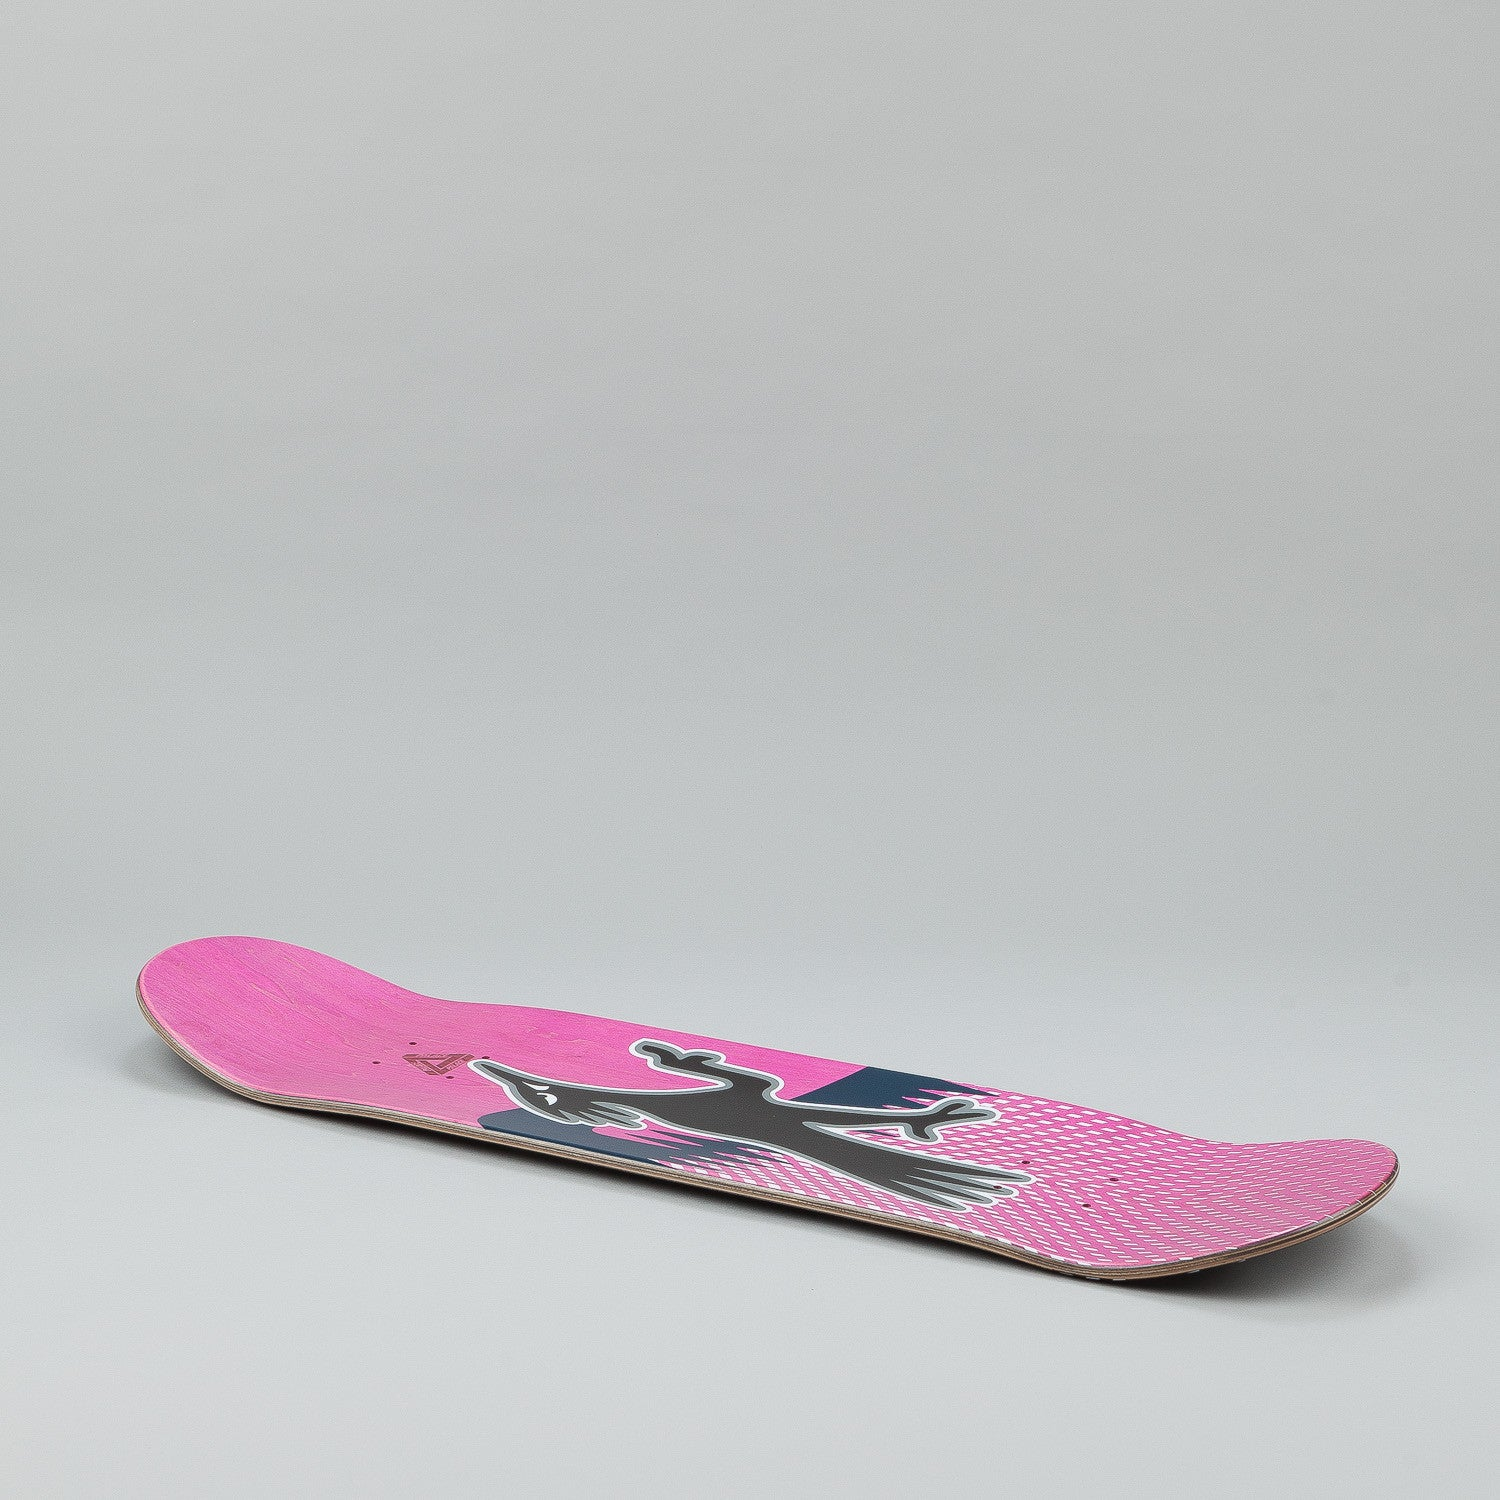 Palace Roadrunner 90's 2 Team Deck - 8.0""